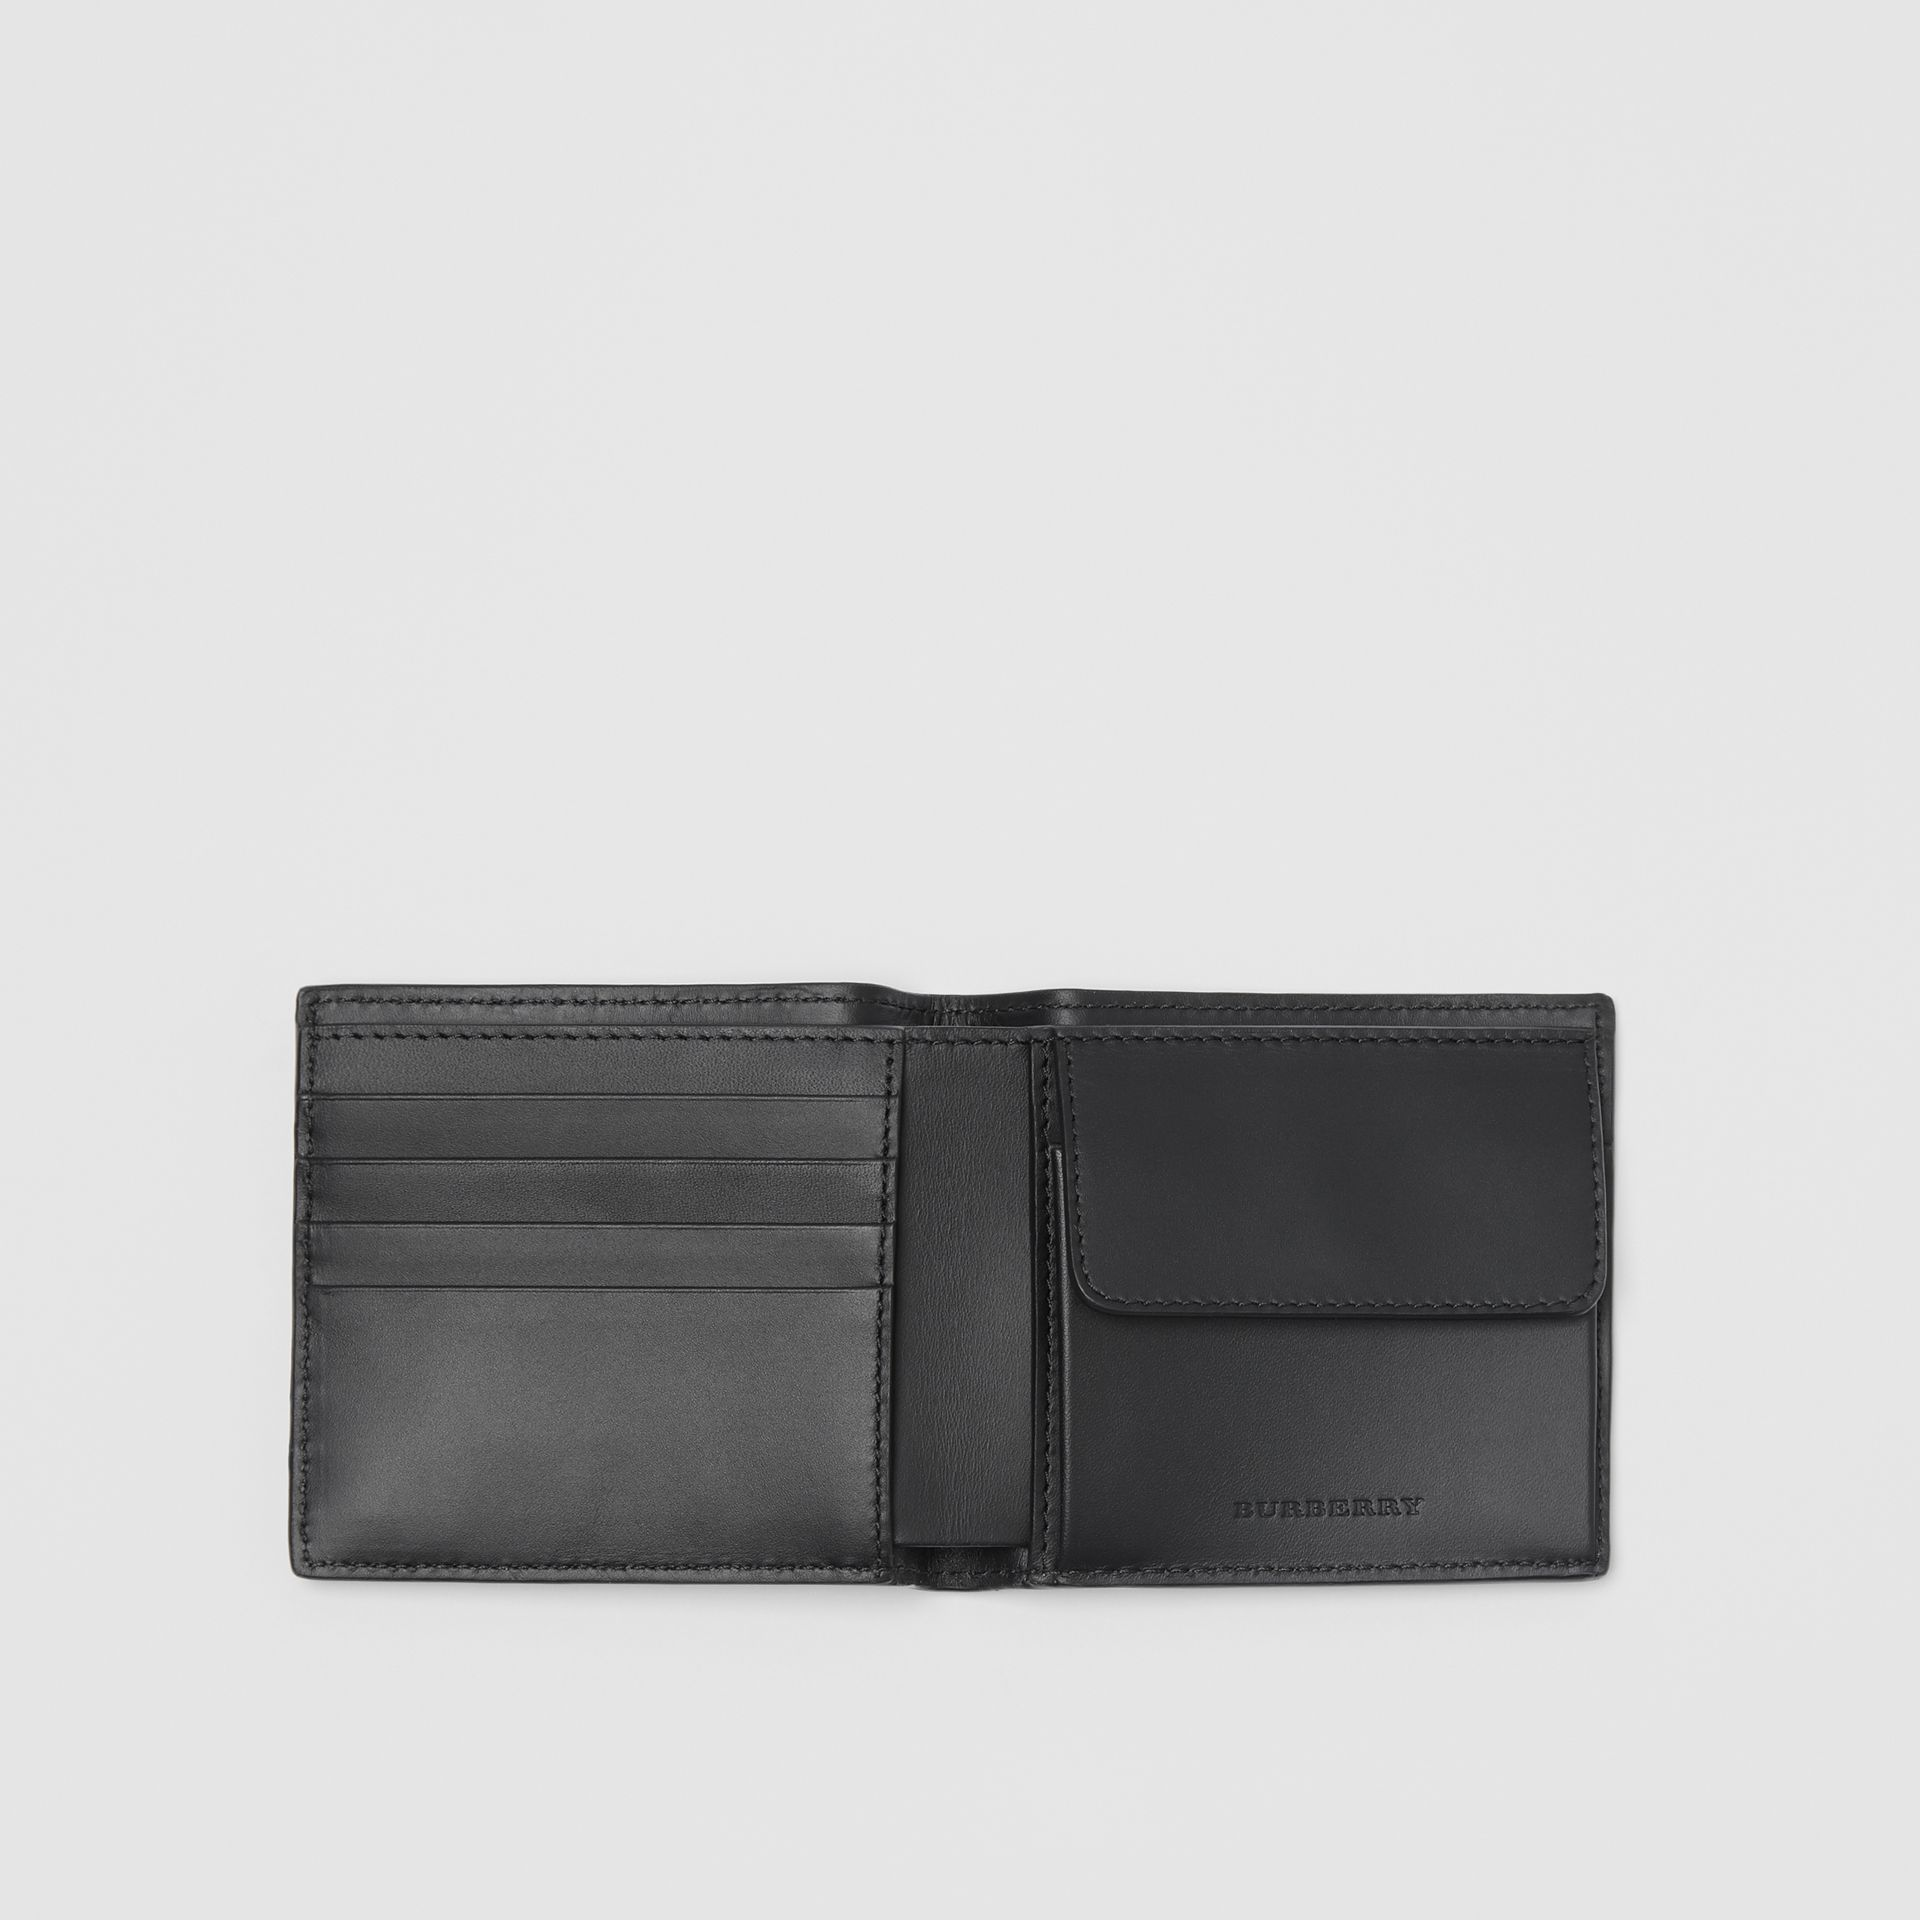 London Leather International Bifold Coin Wallet in Black - Men | Burberry Hong Kong - gallery image 3